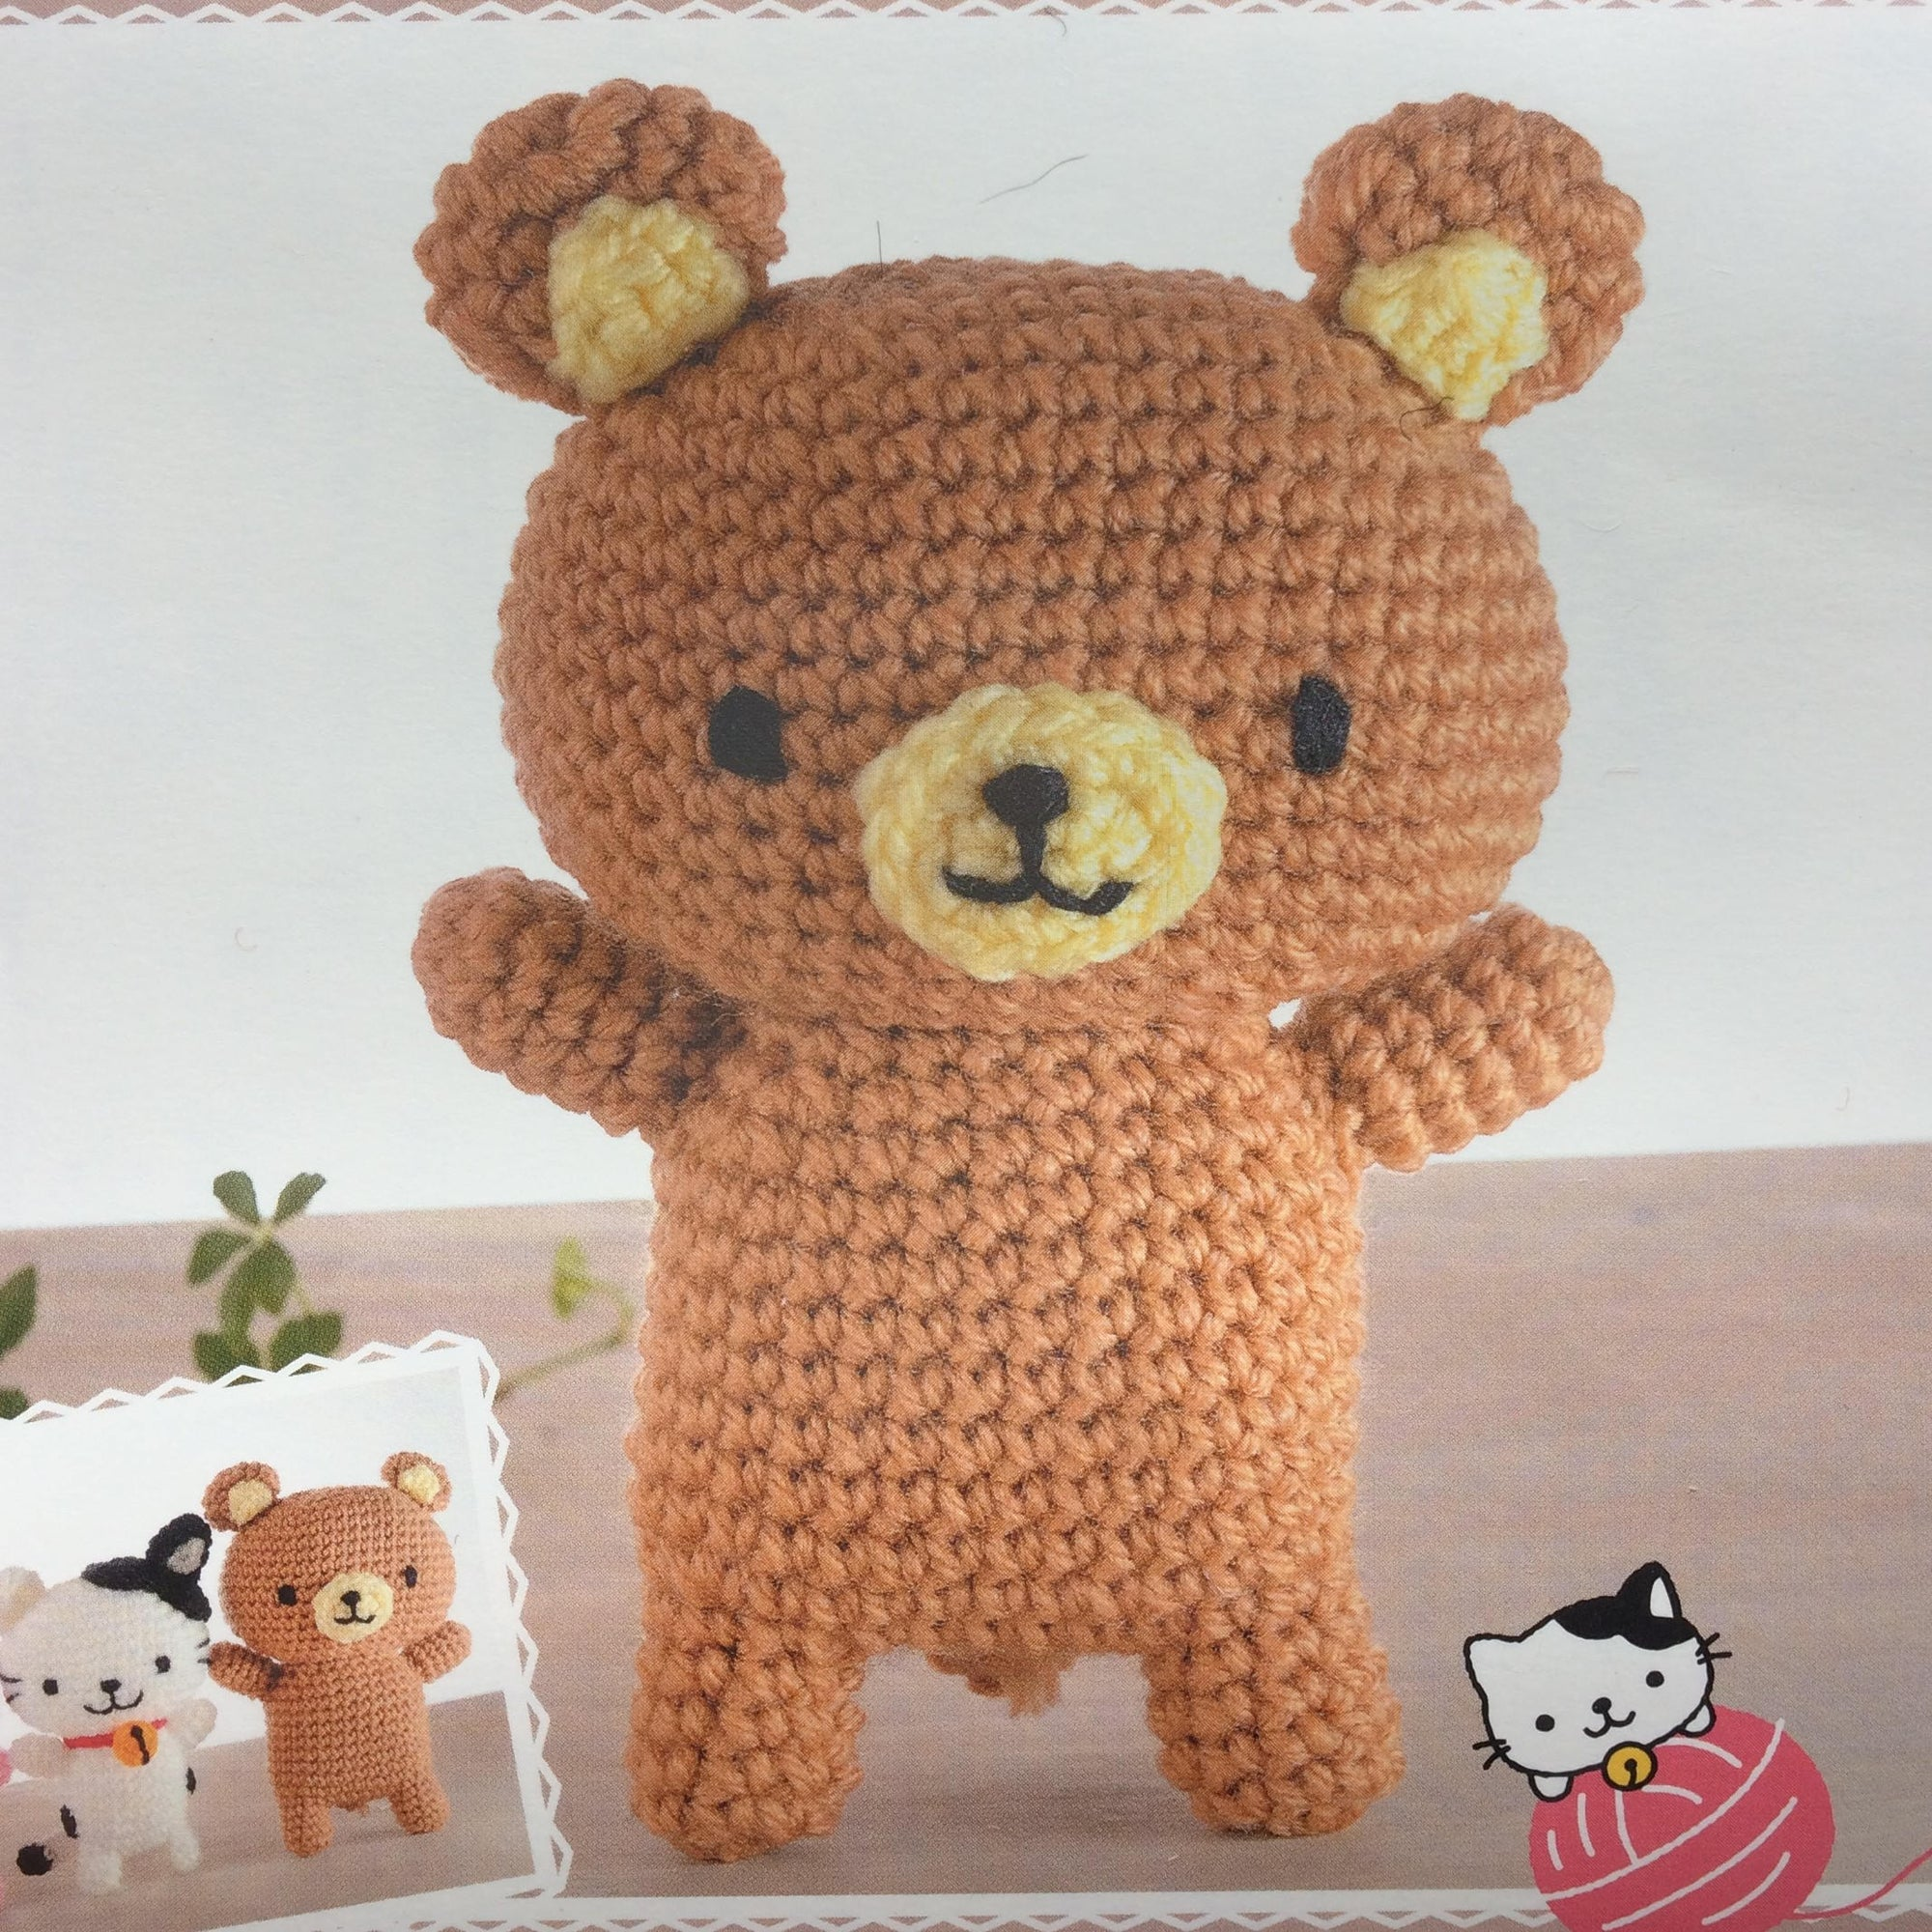 Japanese Hamanaka Amigurumi Bear Craft Kit- Brown Bear 22 x 15 cm.